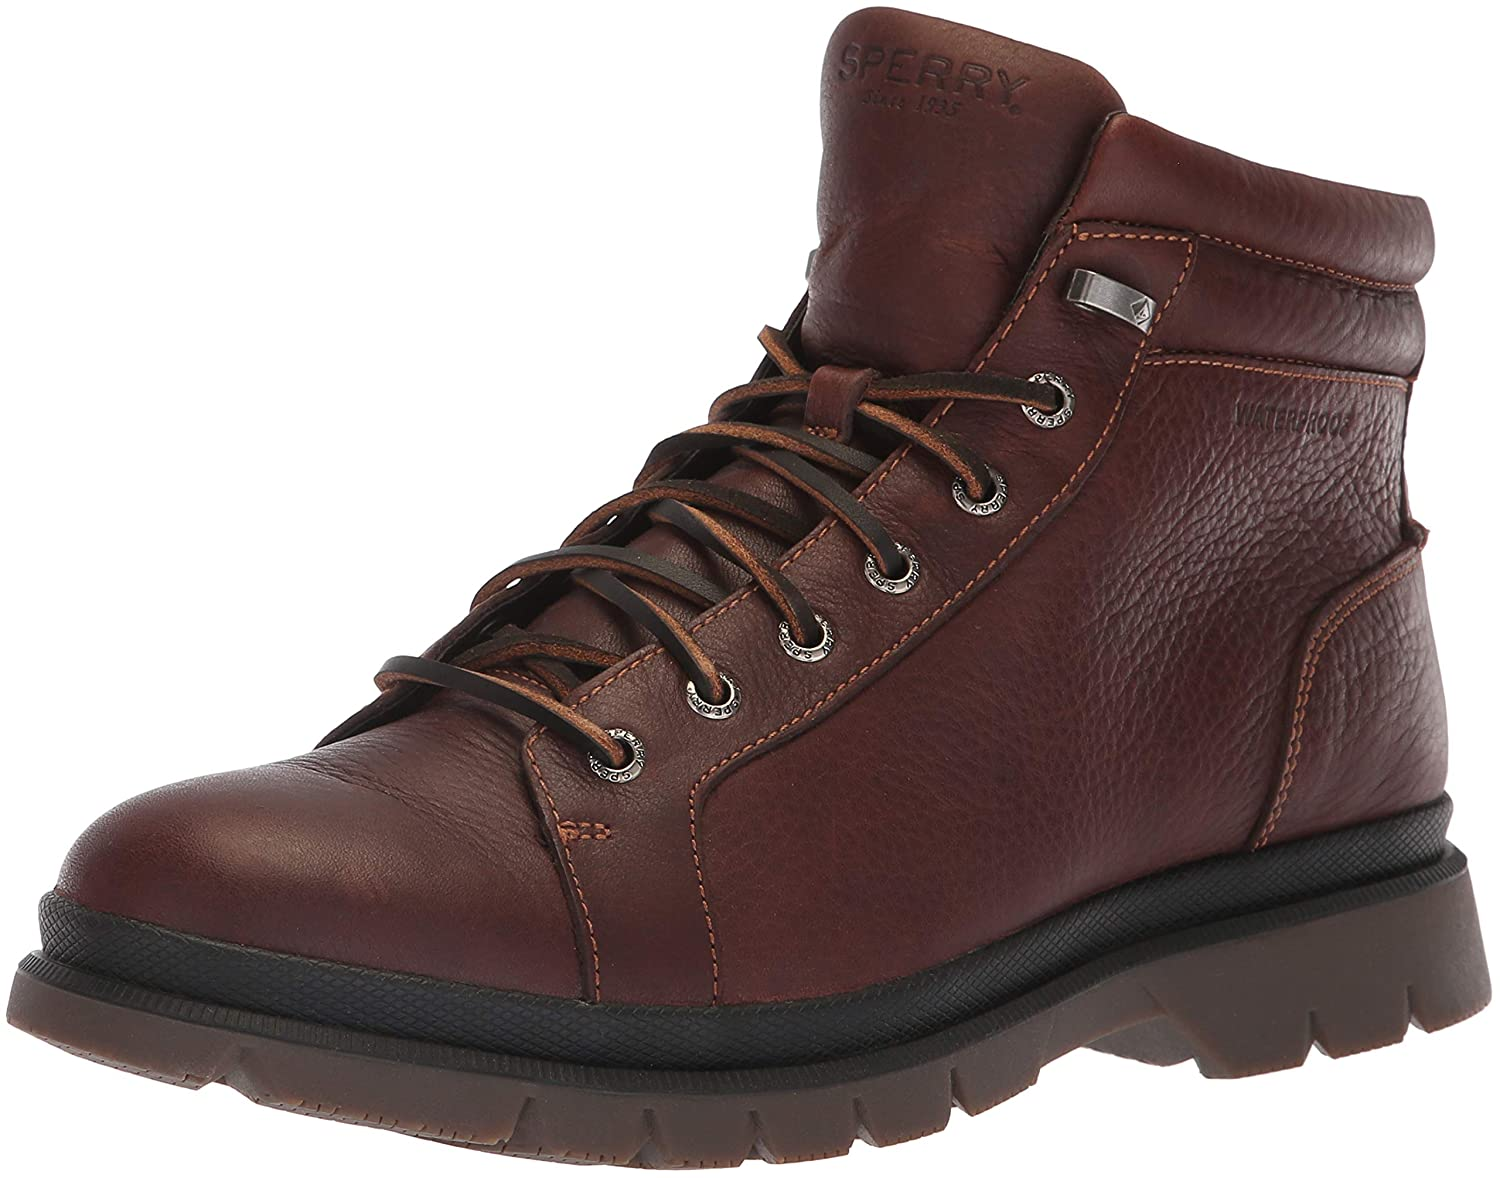 Dk marron 42 EU Sperry Watertown LTT démarrage chaussures